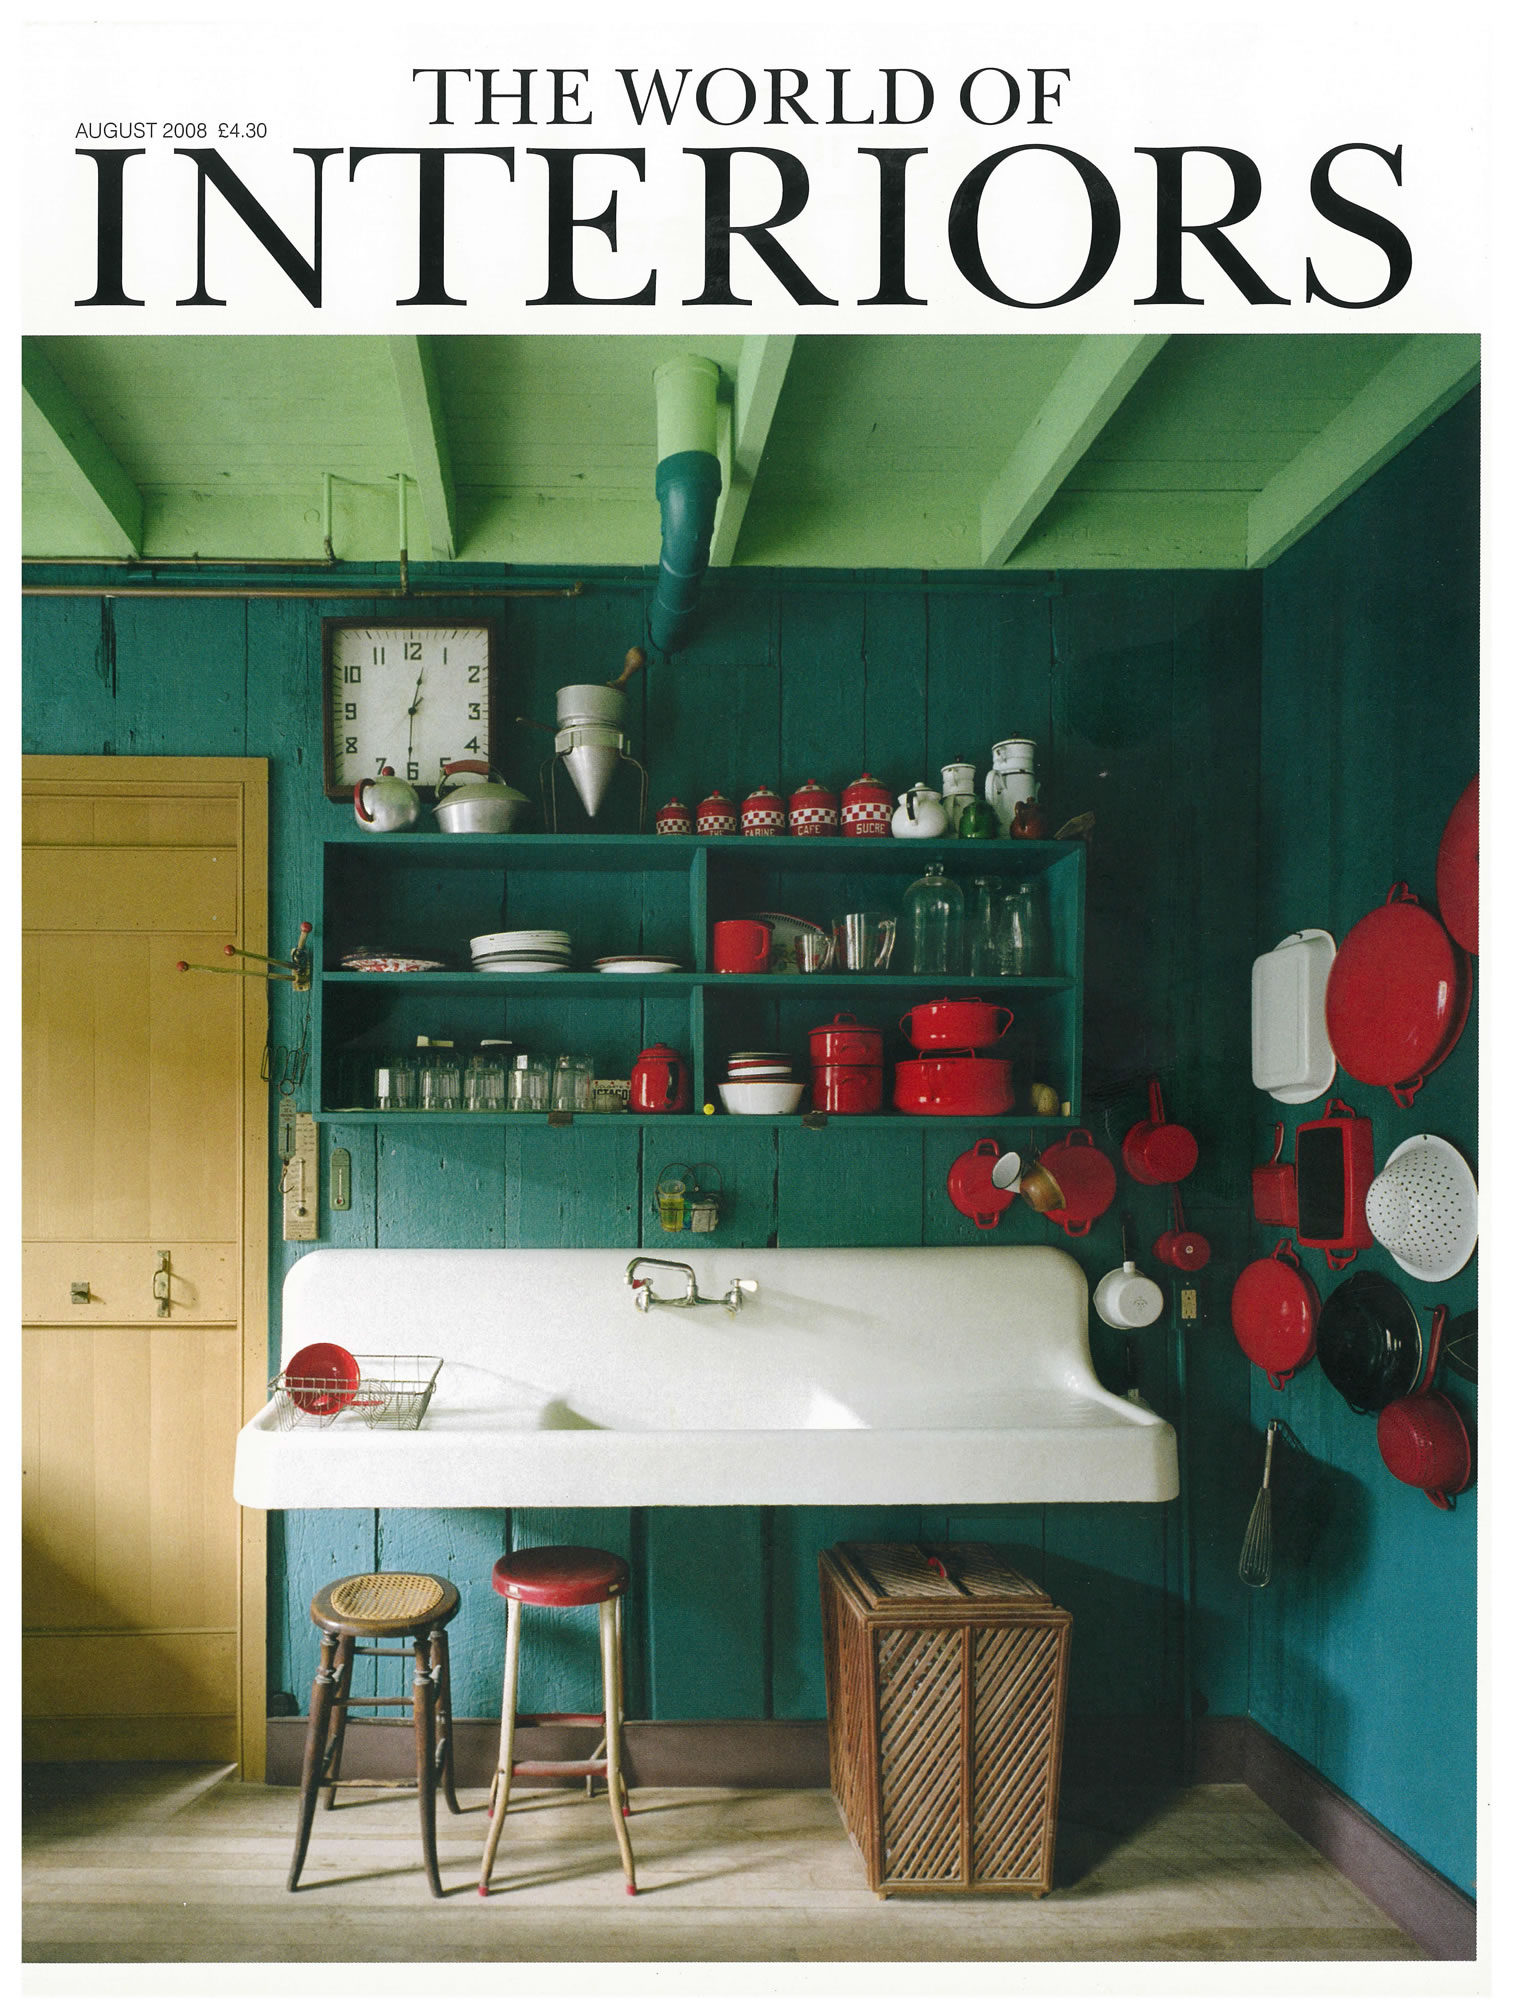 The Interiors Of This Modern Mexican House Open To: The World Of Interiors - August 2008